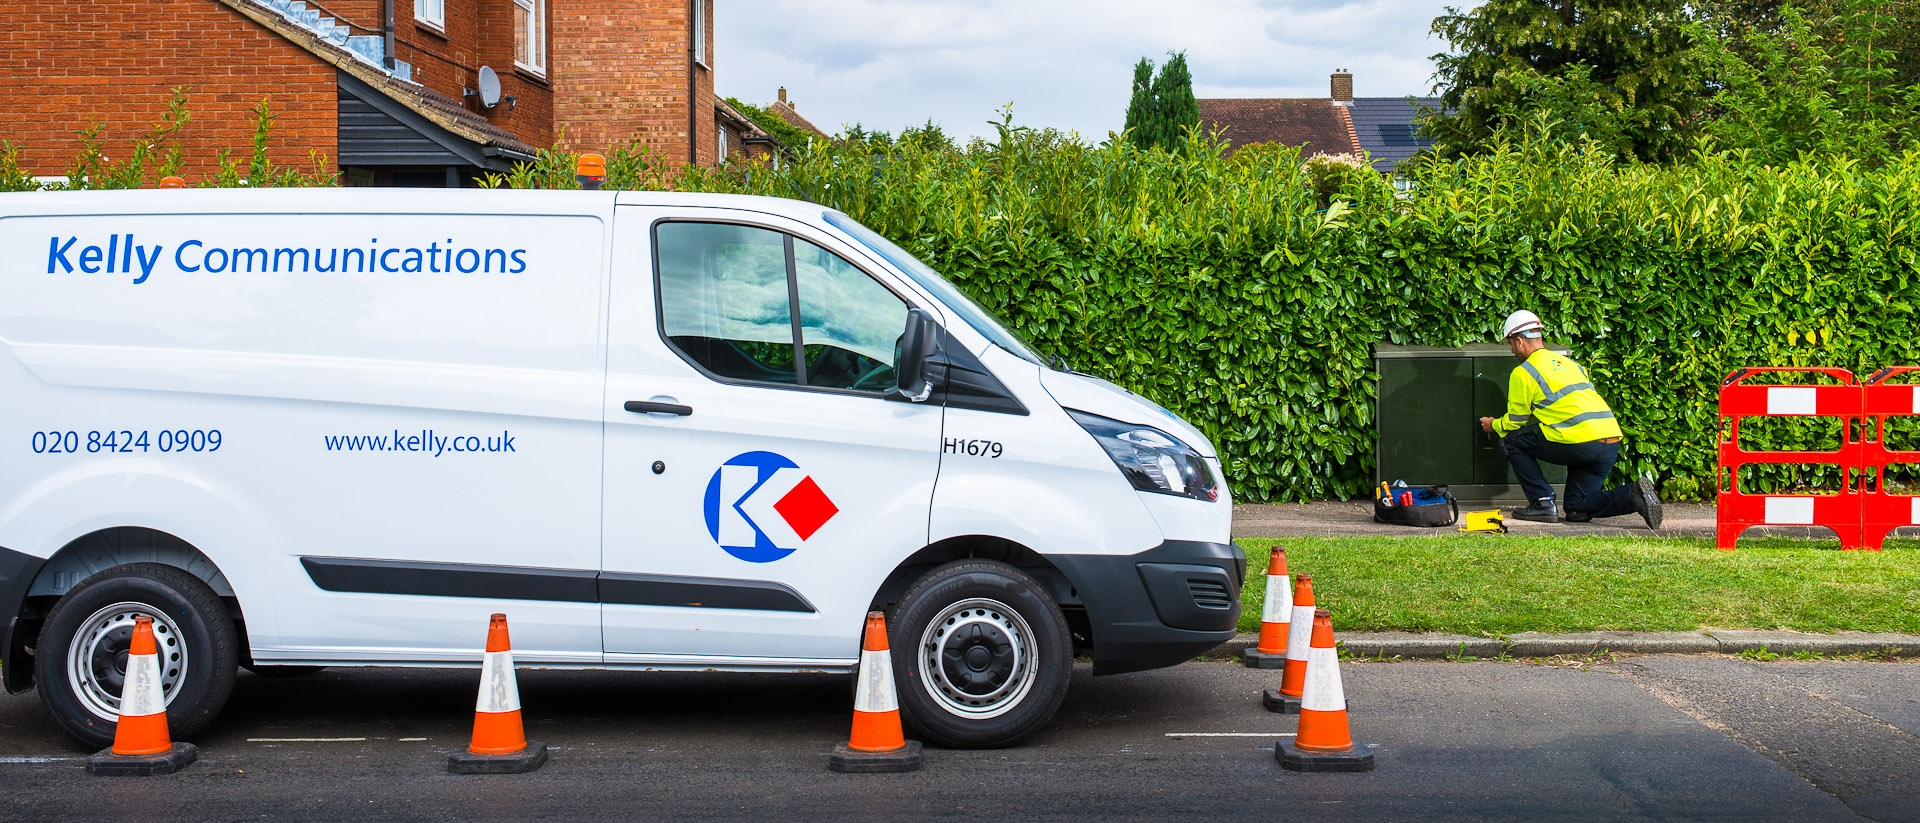 Kelly communications van and technician at street broadband cabinet